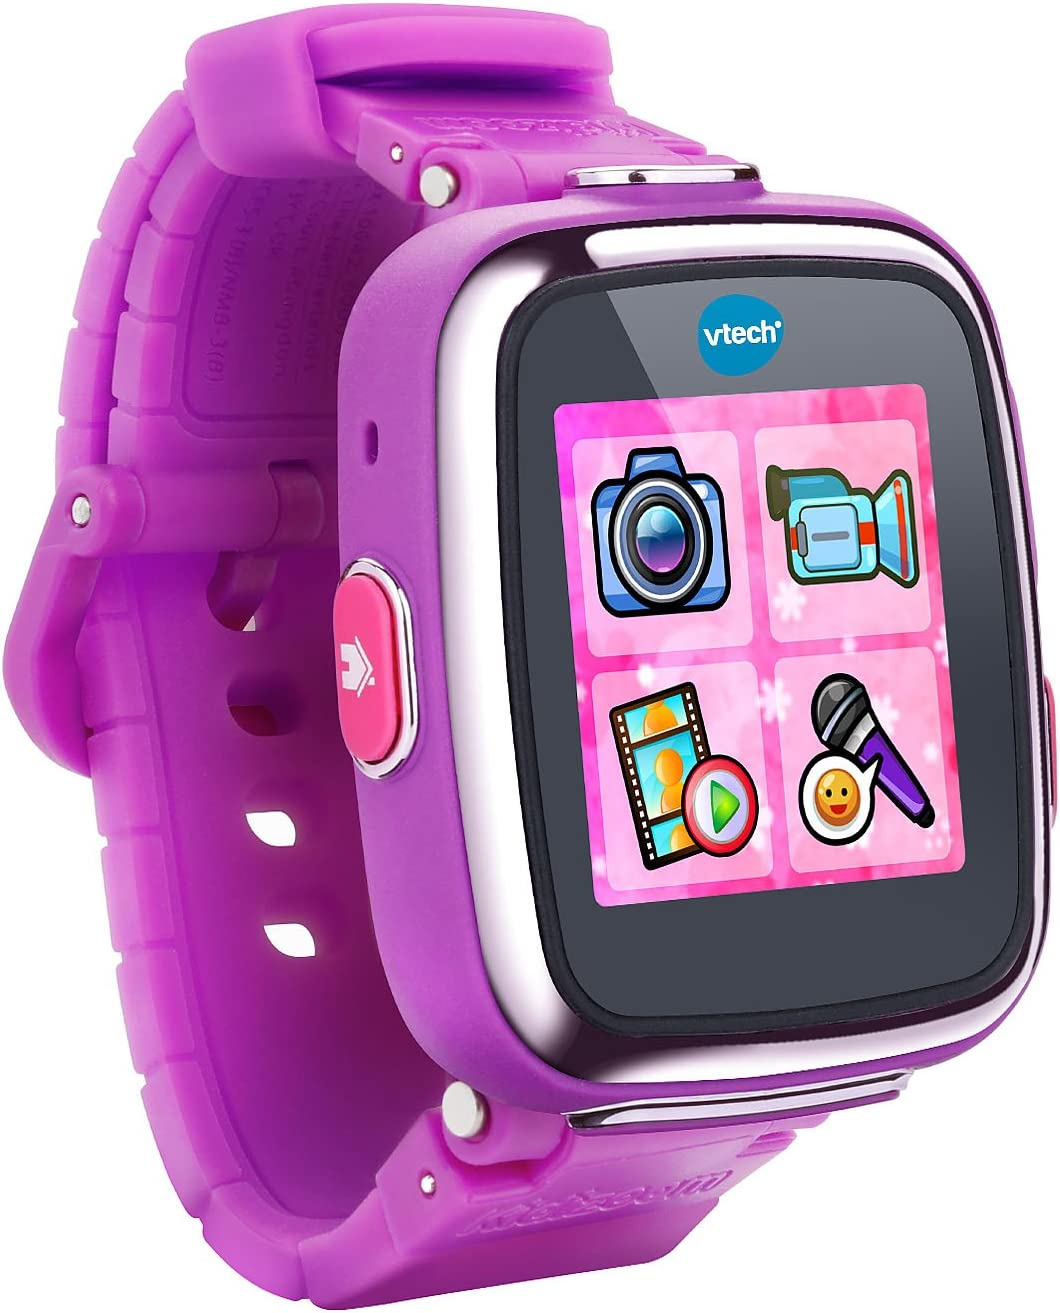 Kidizoom Smartwatch DX - Video Camera with Photo Effects, Vivid ...